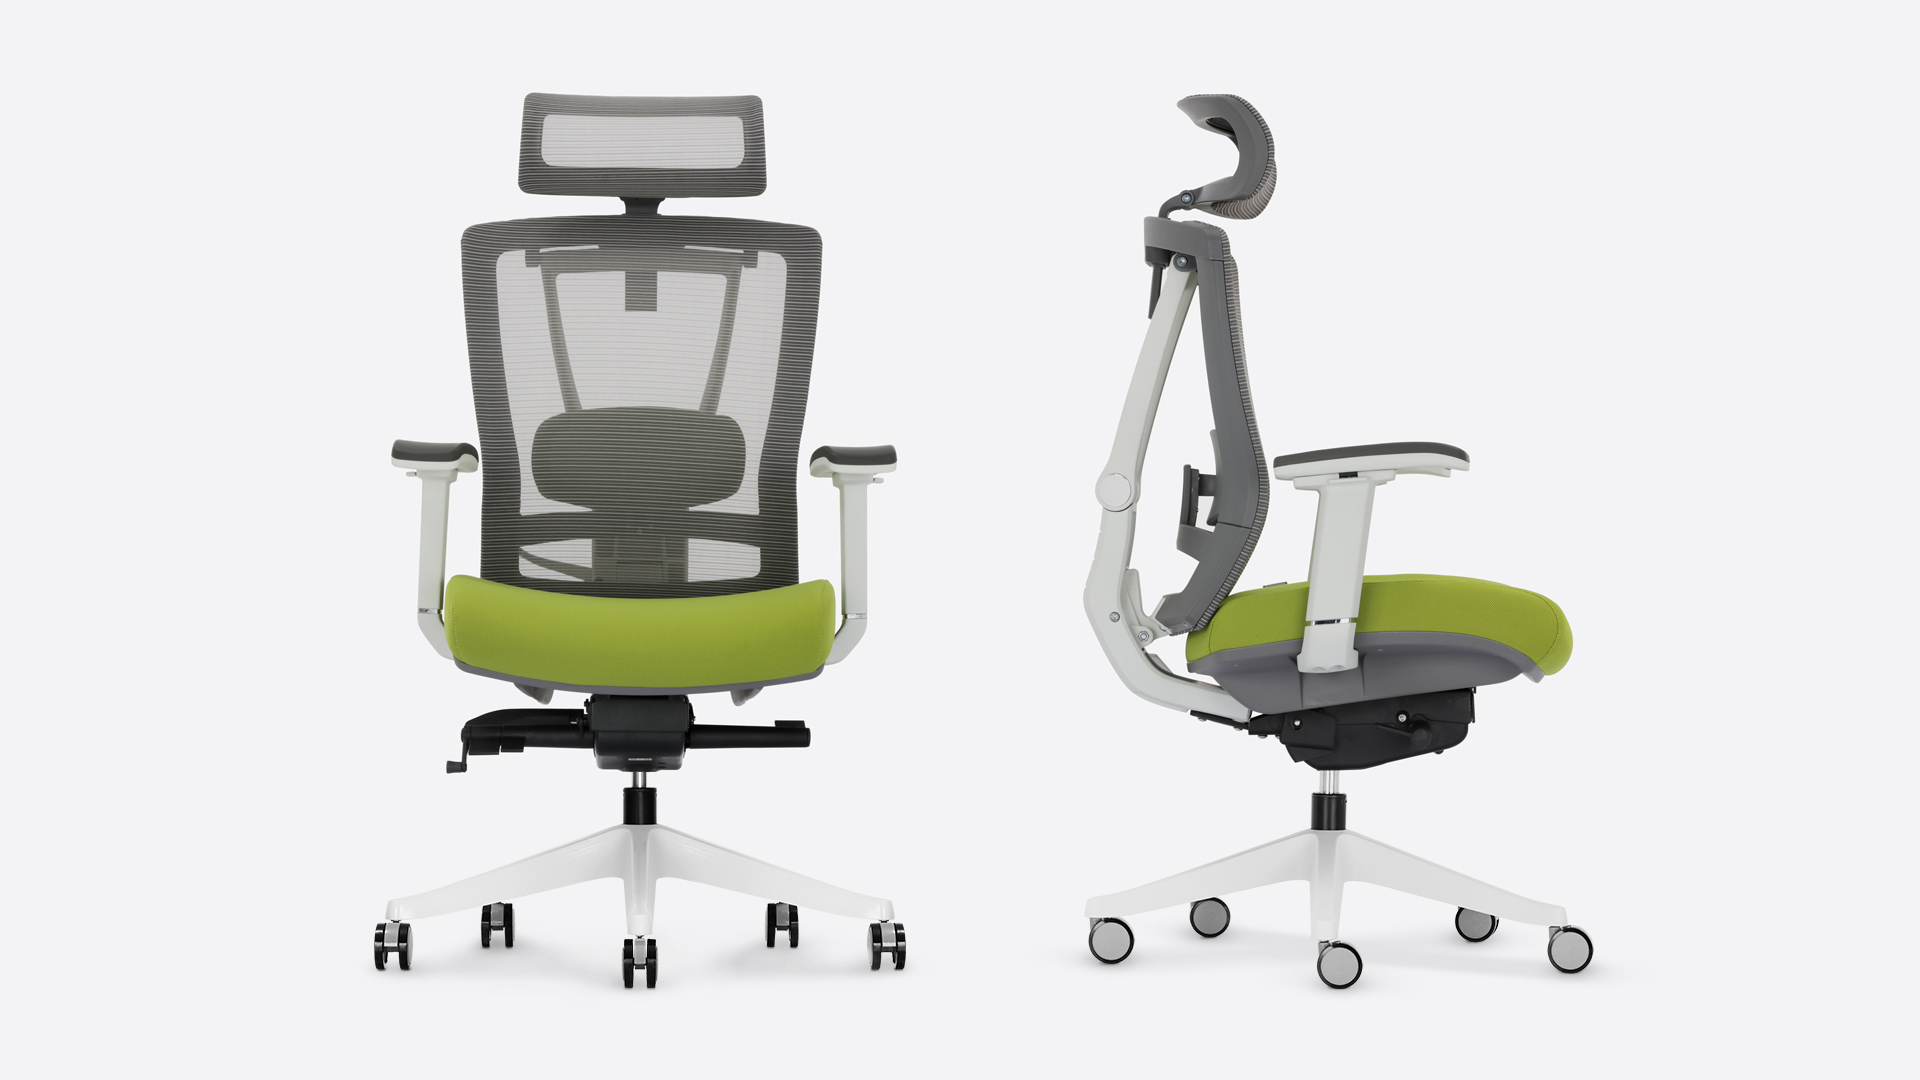 10 Ways To Get Value For Money With Your Online Office Chair Purchase - Image 3